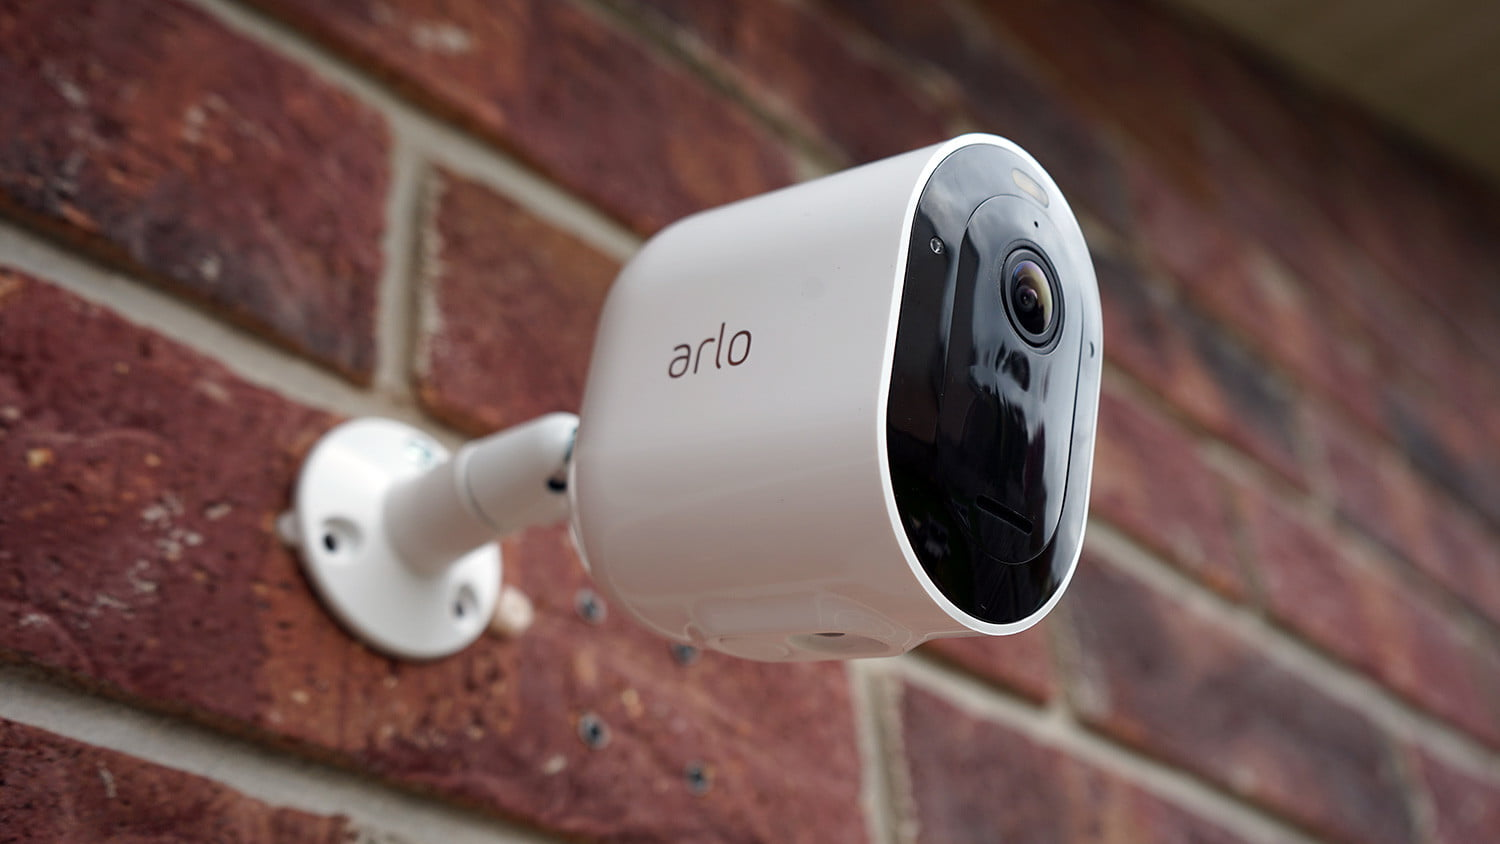 Arlo Pro 3 Review A Great Choice For Smart Home Security Digital Trends